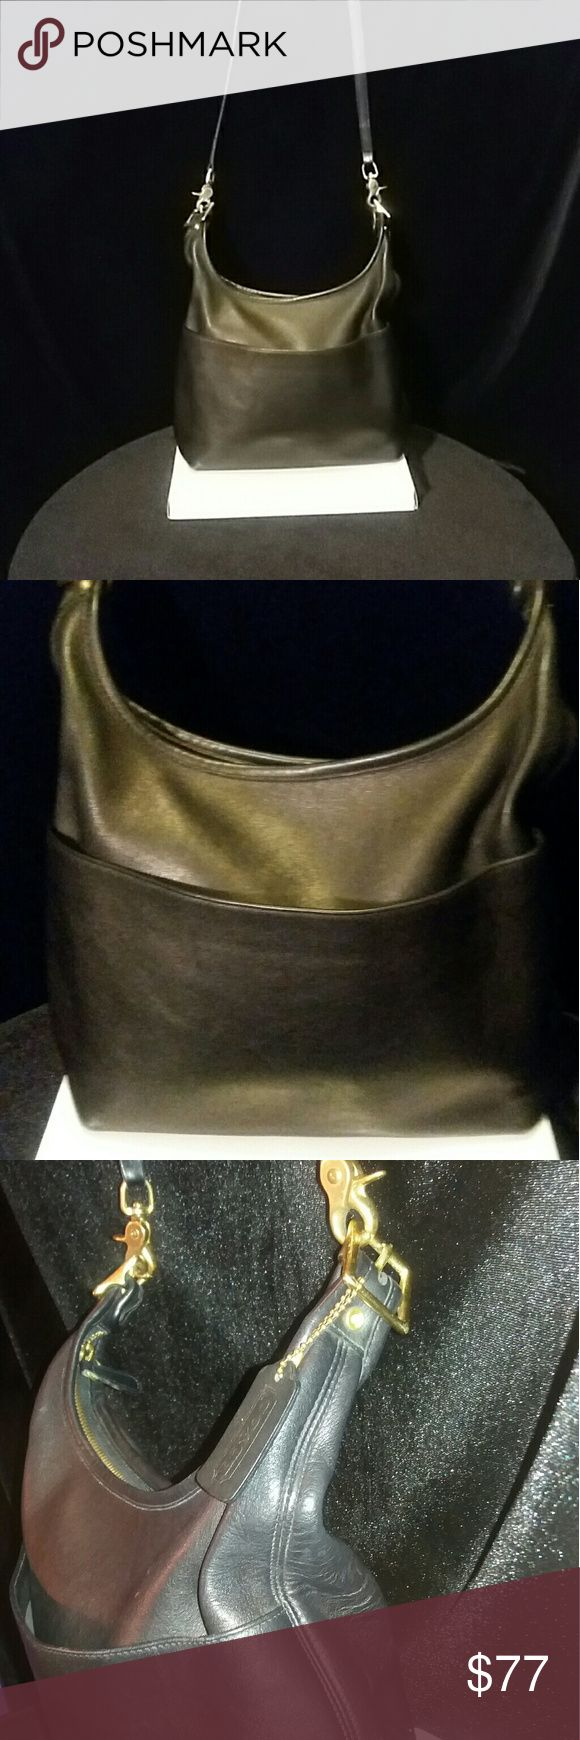 Coach Legacy Leather Handbag 9058 Coach Legacy Leather Handbag Handbag Approximately 10L x 4.5 W inches Drop 27 inches Good Used Condition signs of wear, scuffs, marks , typical leather discoloration all over Emblem/Tag: Yes Bag: No No holds/ NoTrades/ No Personal Emails/ No Modeling Coach Bags